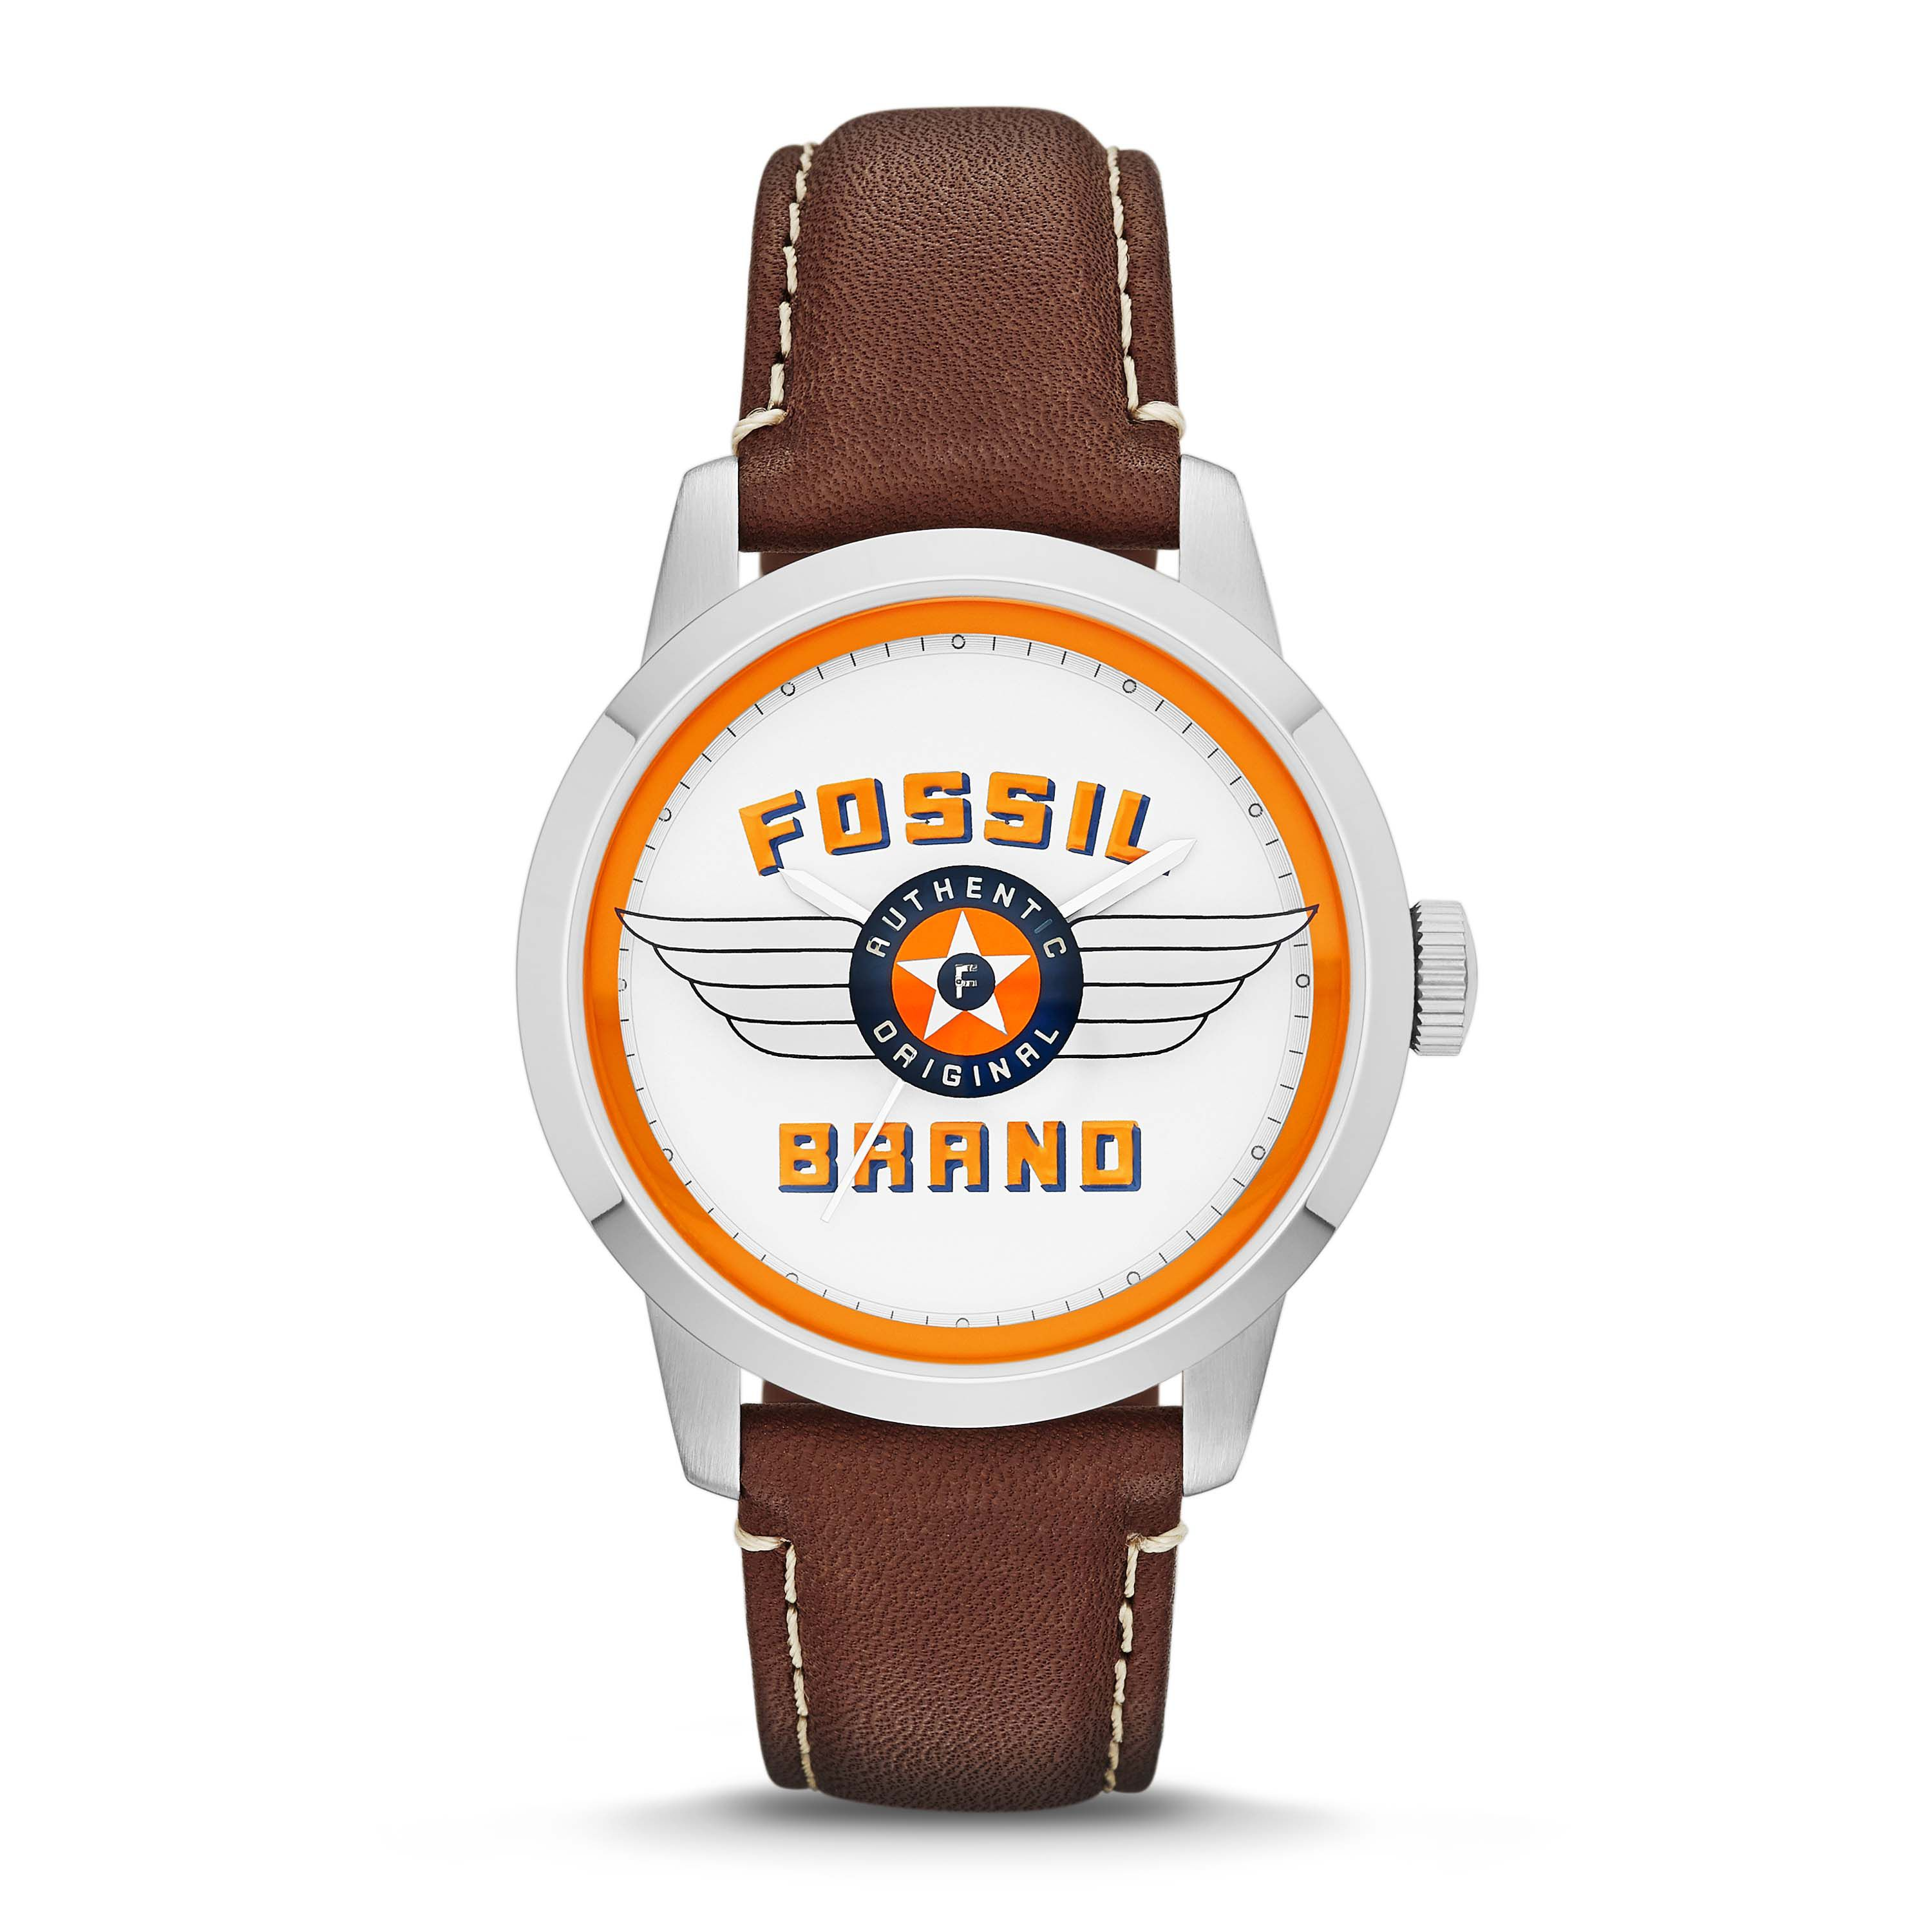 Fs4896 townsman gents brown leather watch